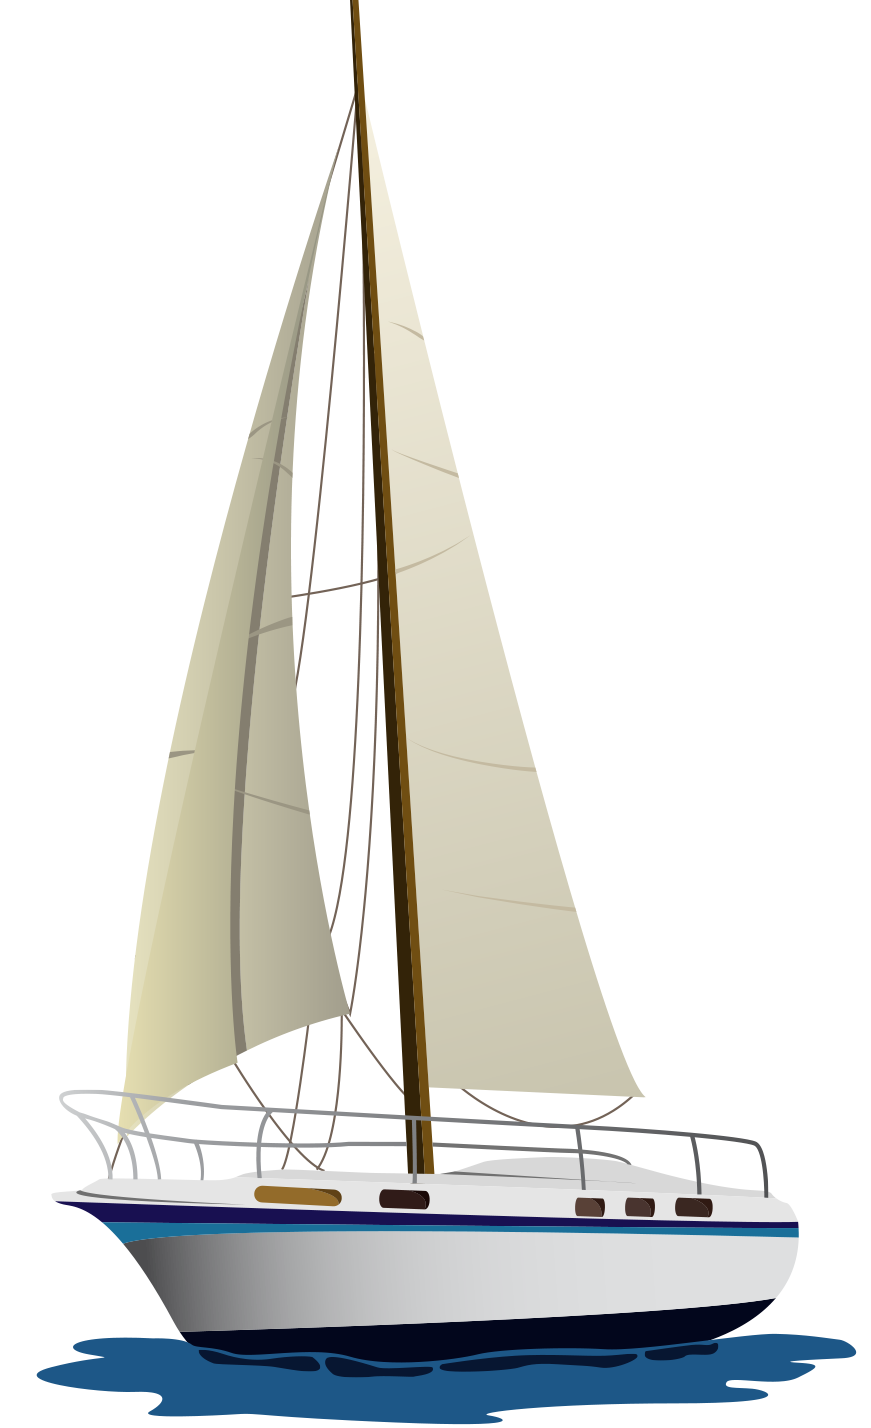 Sailboat PNG HD Transparent Sailboat HD.PNG Images..